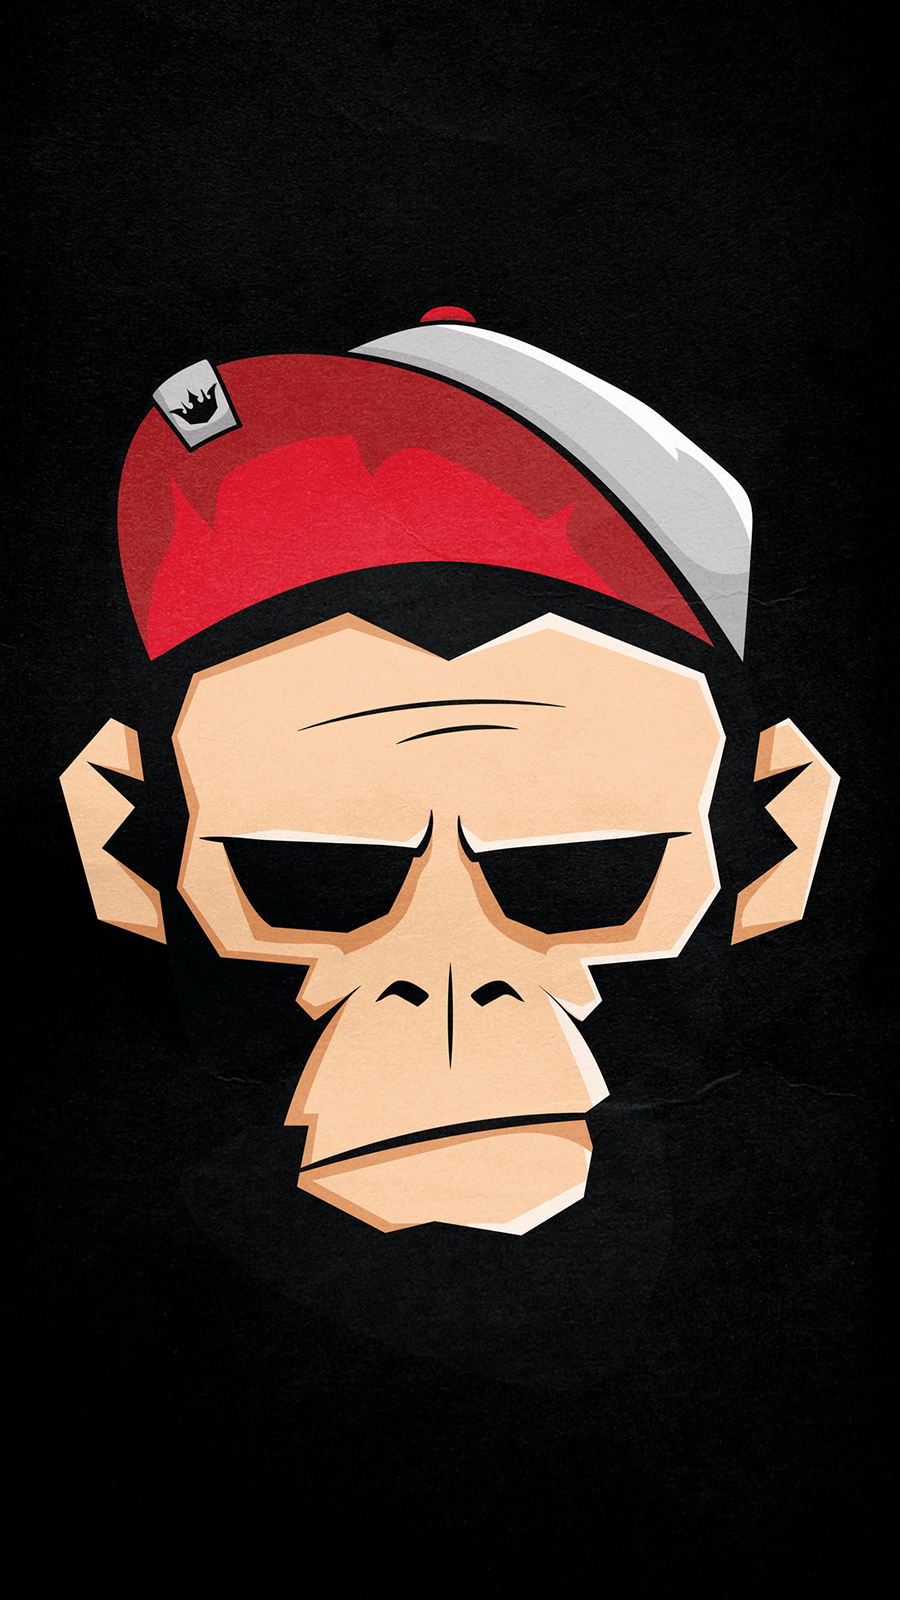 Most Downloaded Monkey Wallpapers of Recent Times.